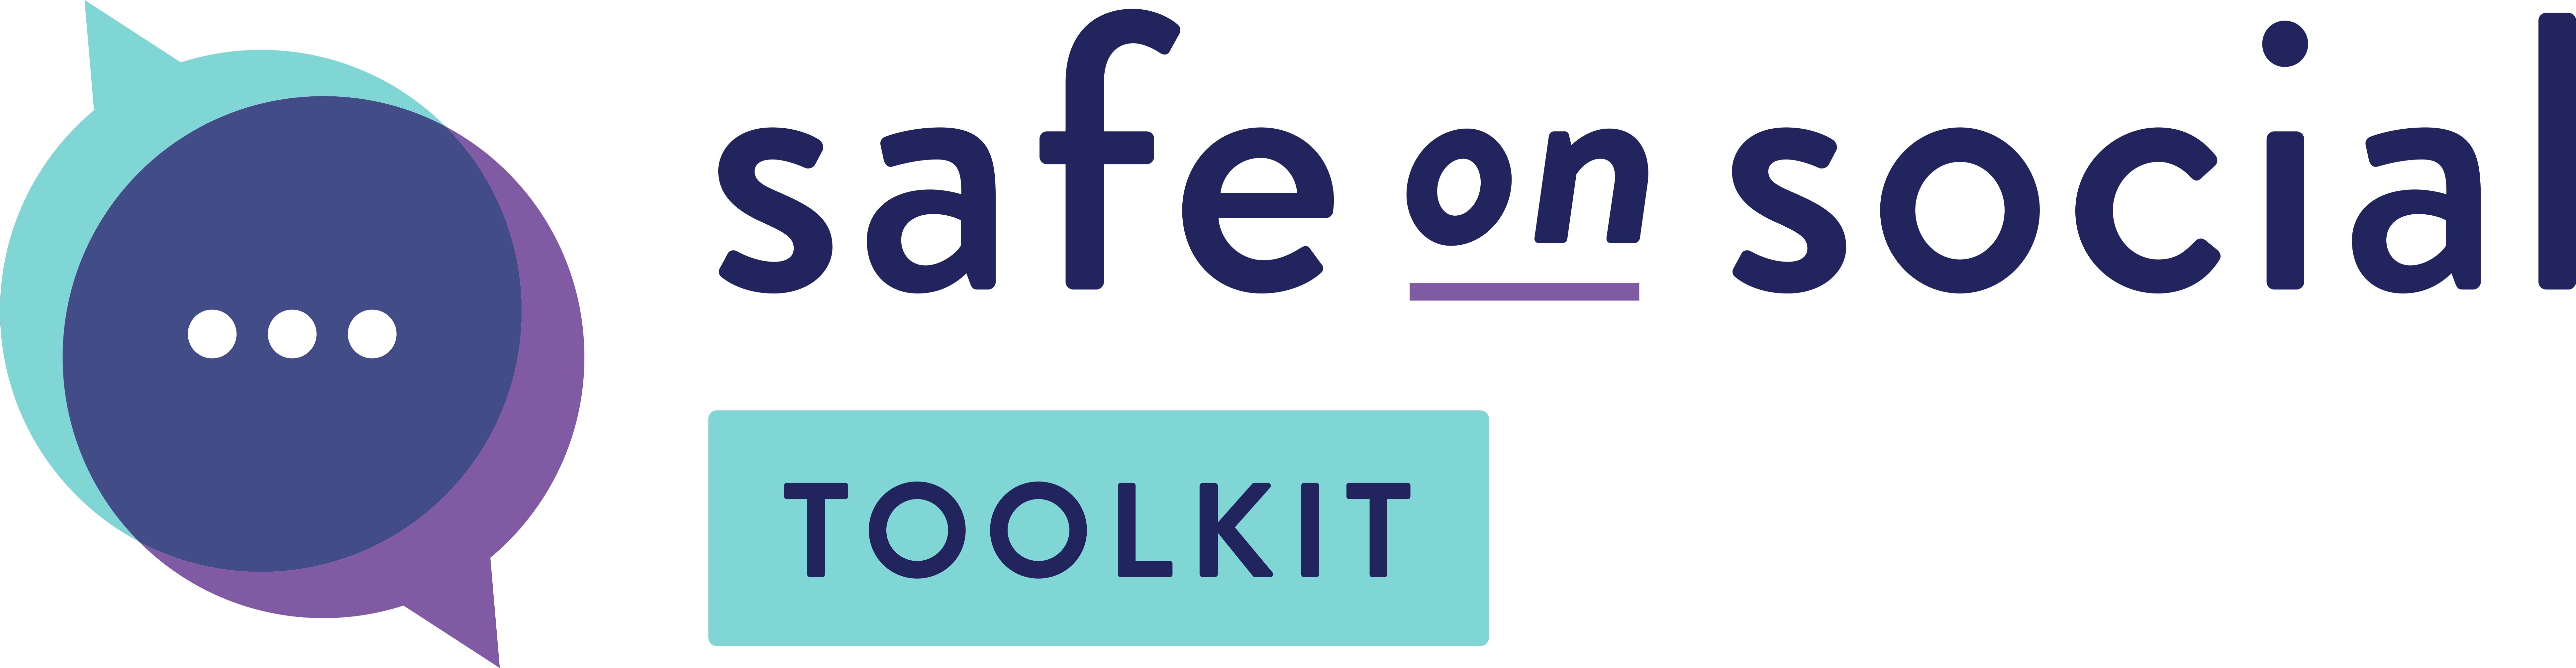 Safe on Social Toolkit